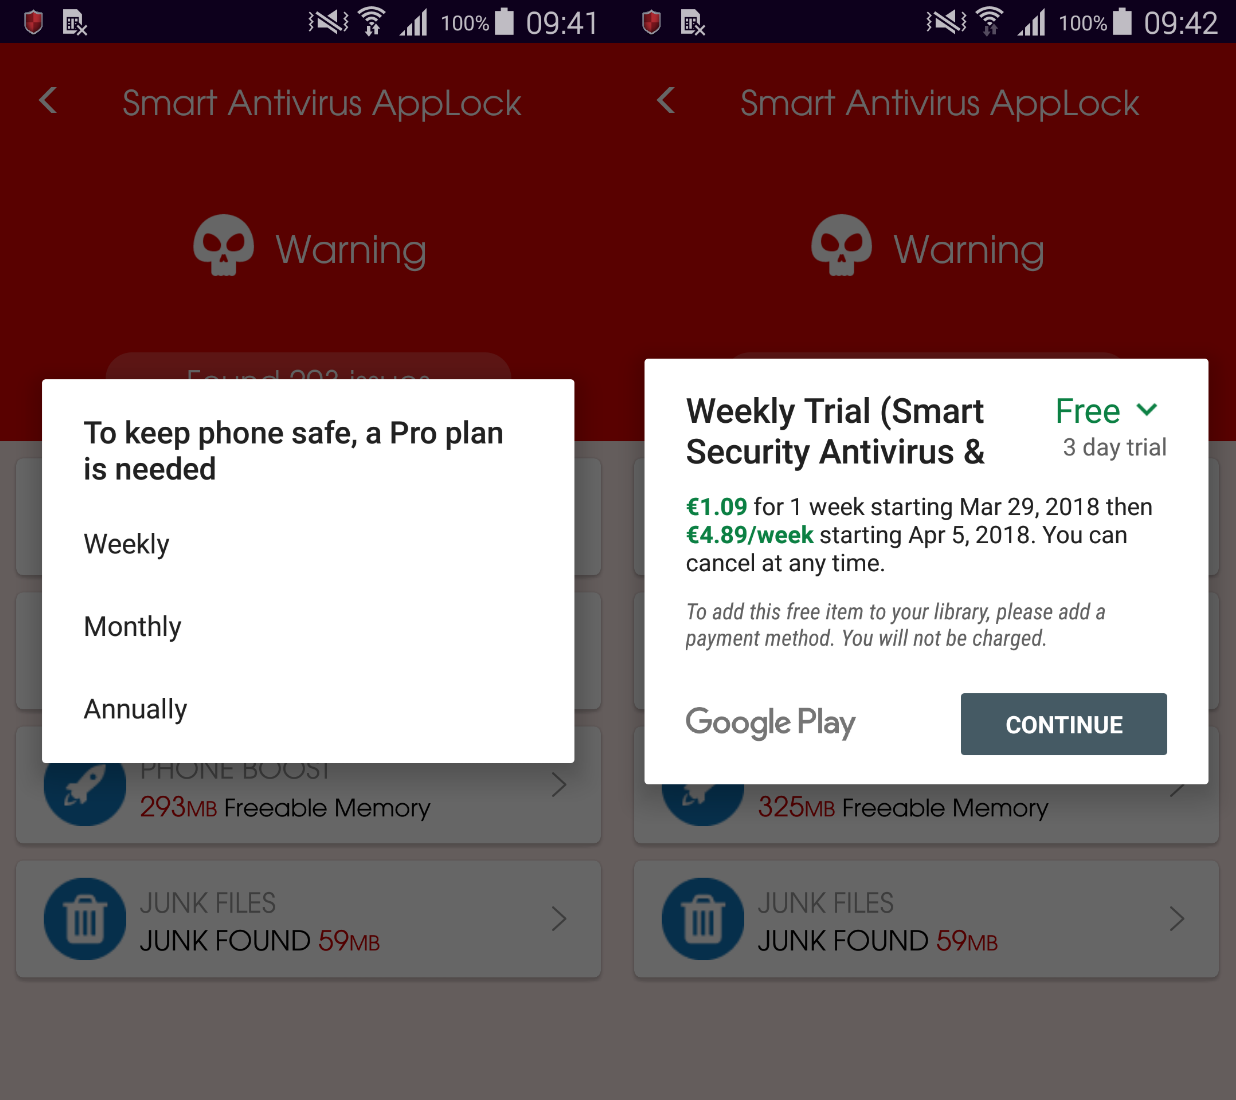 Beware ad slingers thinly disguised as security apps